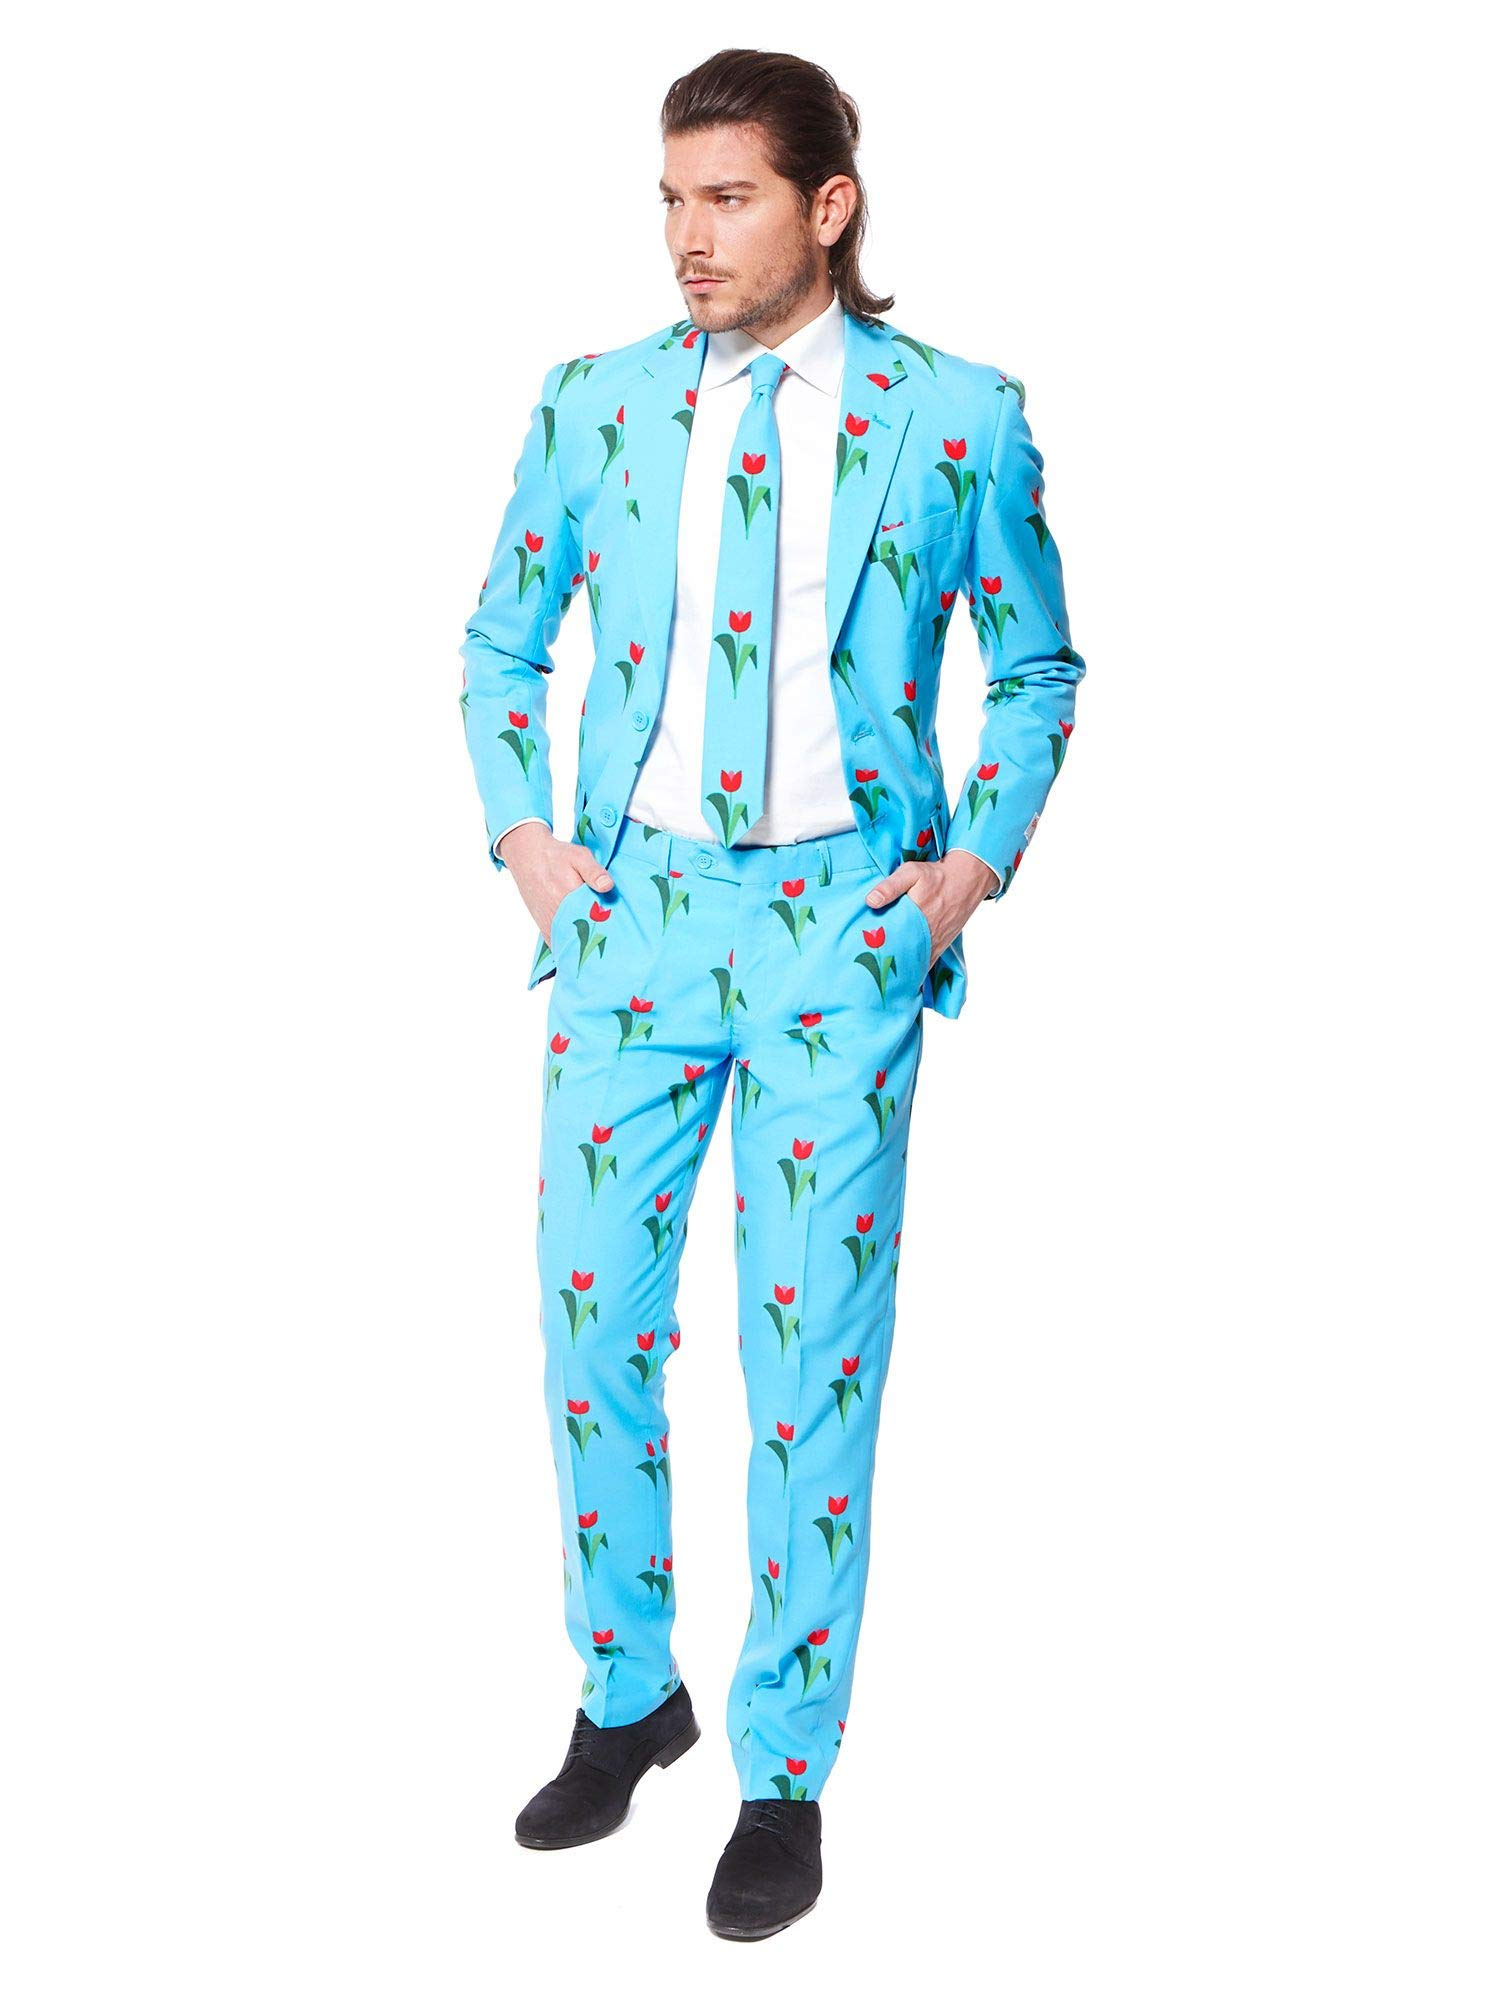 OppoSuits Funny Everyday Suits for Men Comes with Jacket, Pants and Tie in Funny Designs by OppoSuits (Image #3)